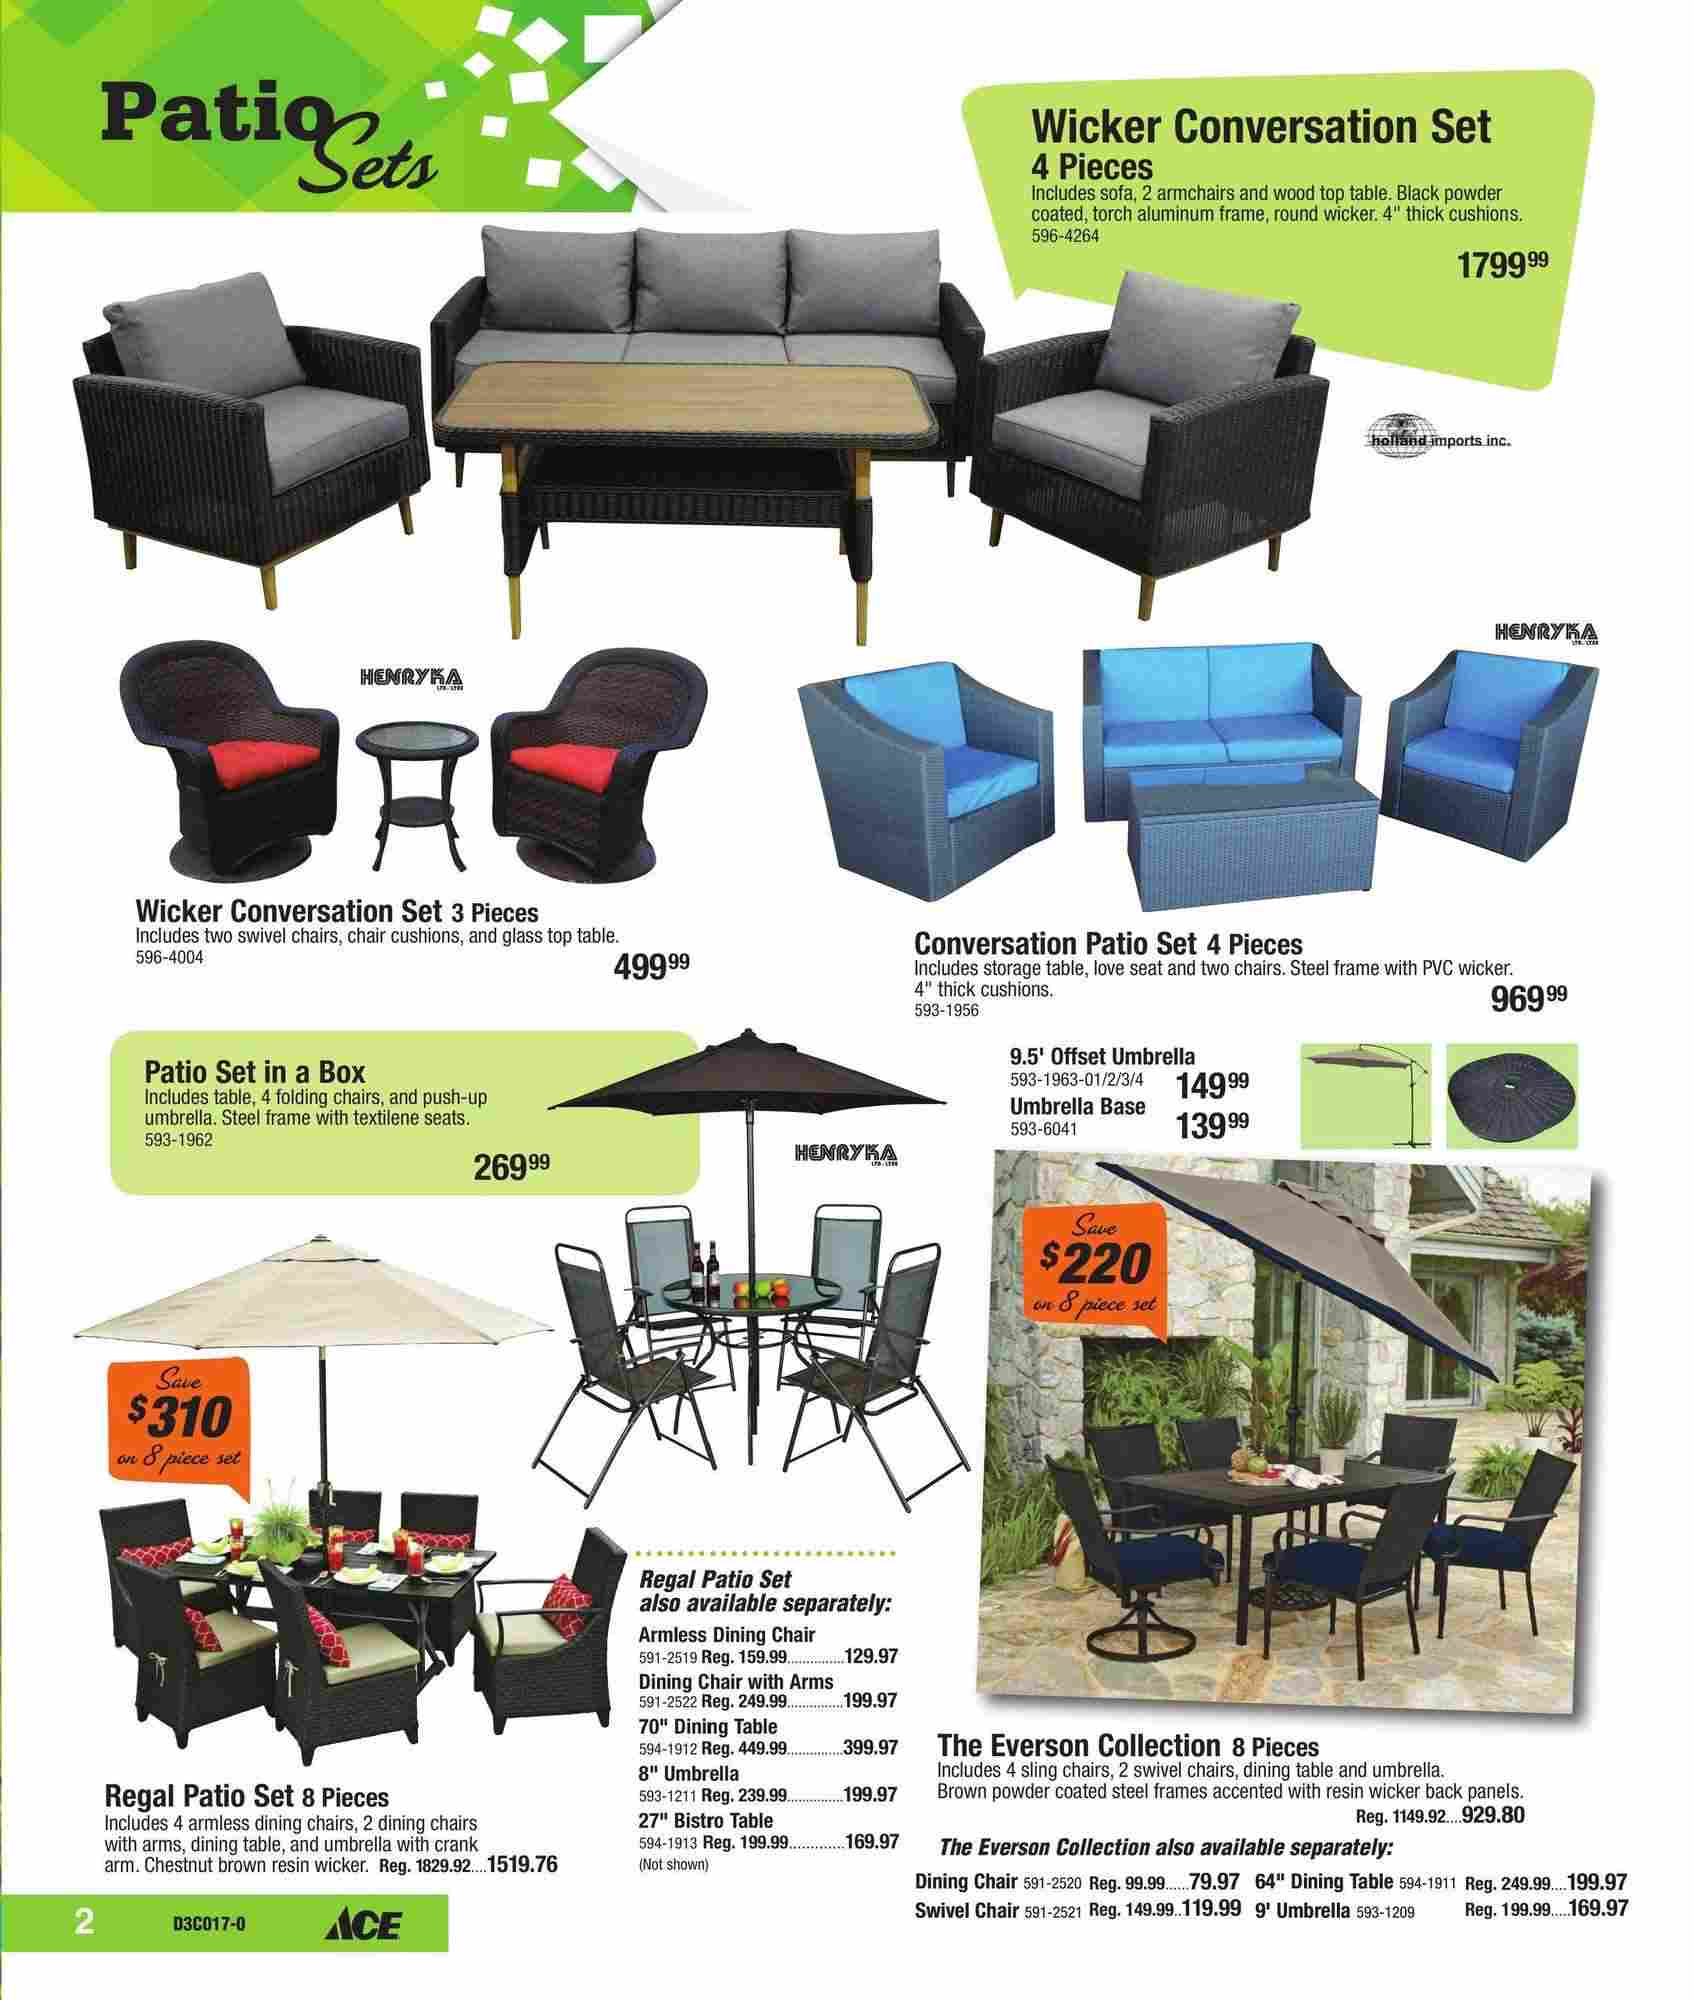 Ace Hardware Canada Outdoor Living Flyer (ON) May 1 - 27 2017 on Ace Outdoor Living id=81585